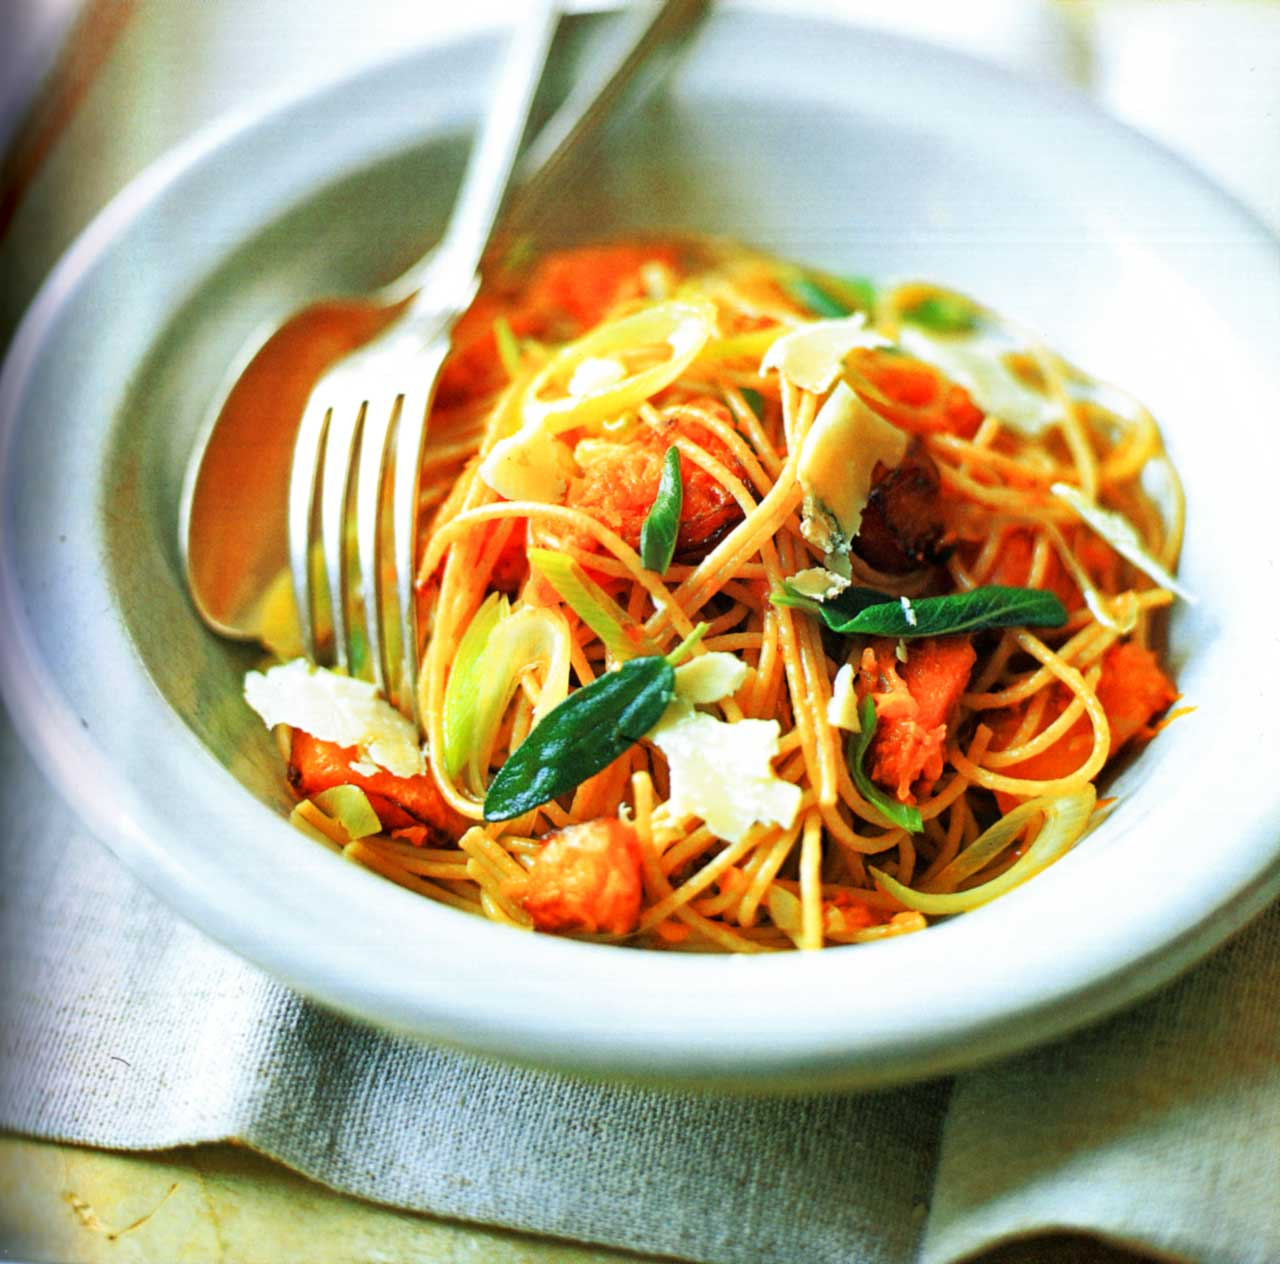 spaghetti squash recipe-Spaghetti With Butternut Squash, Sage And Pecorino